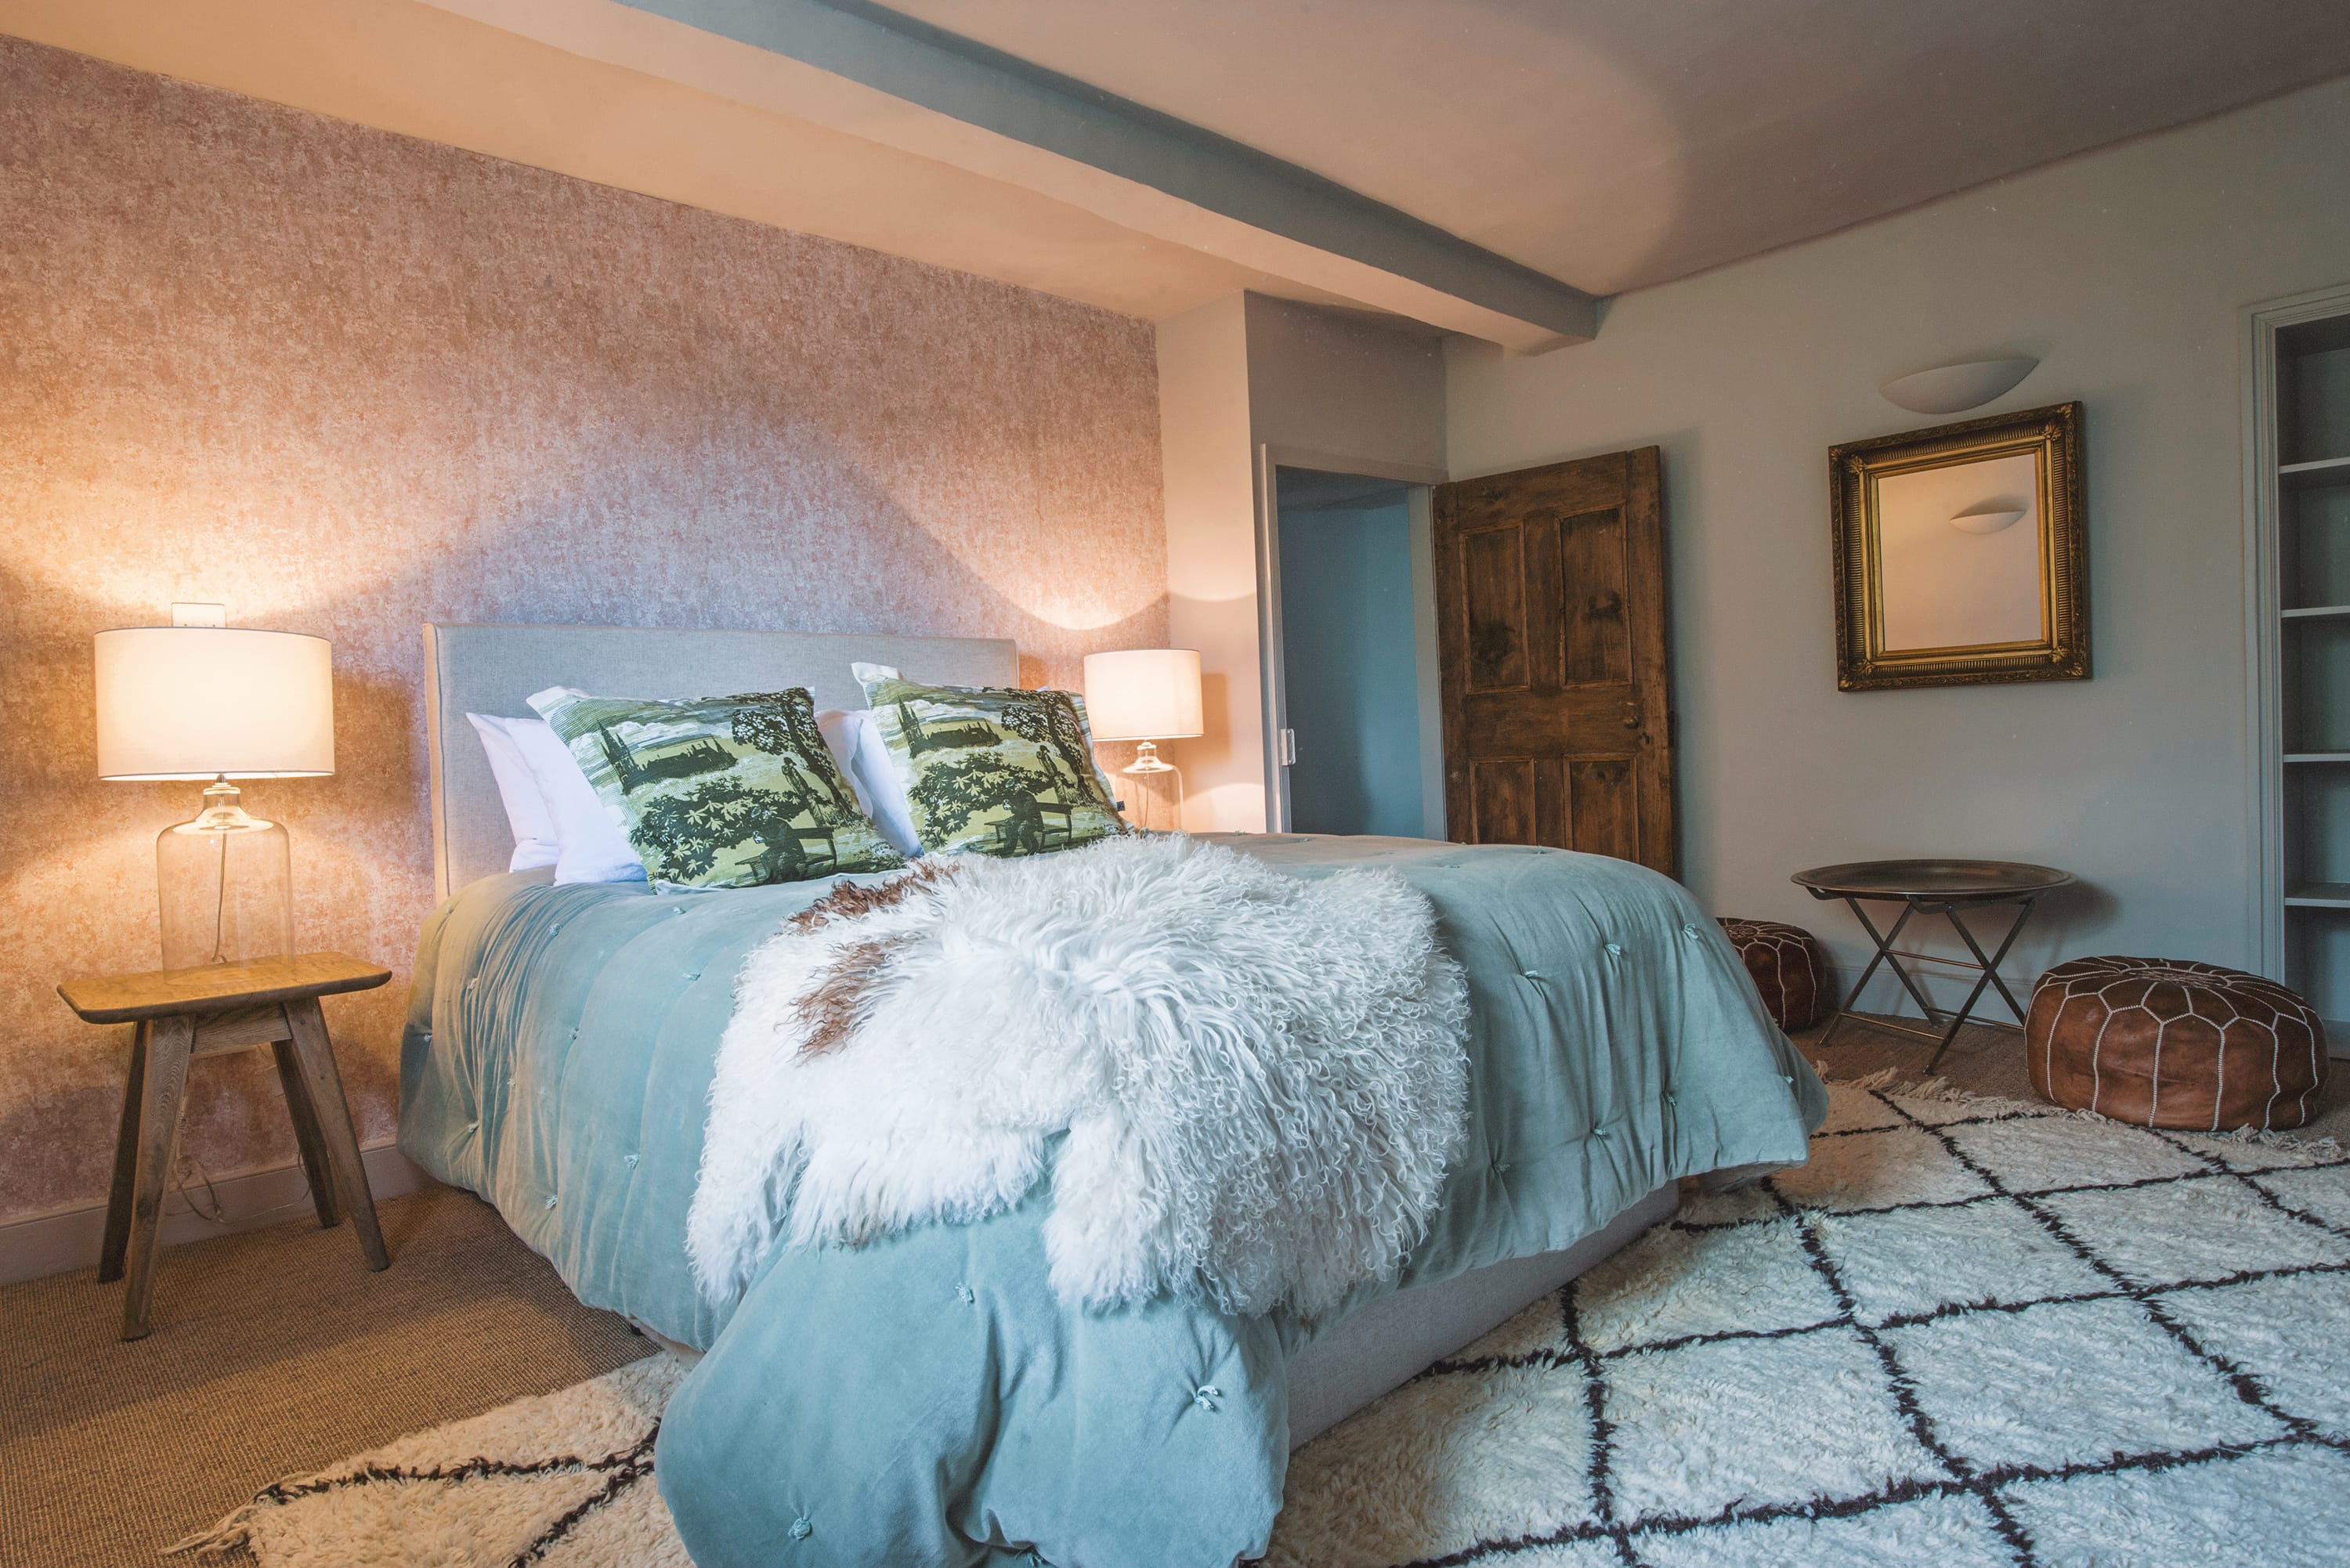 King bedroom with cozy bed and sheepskins